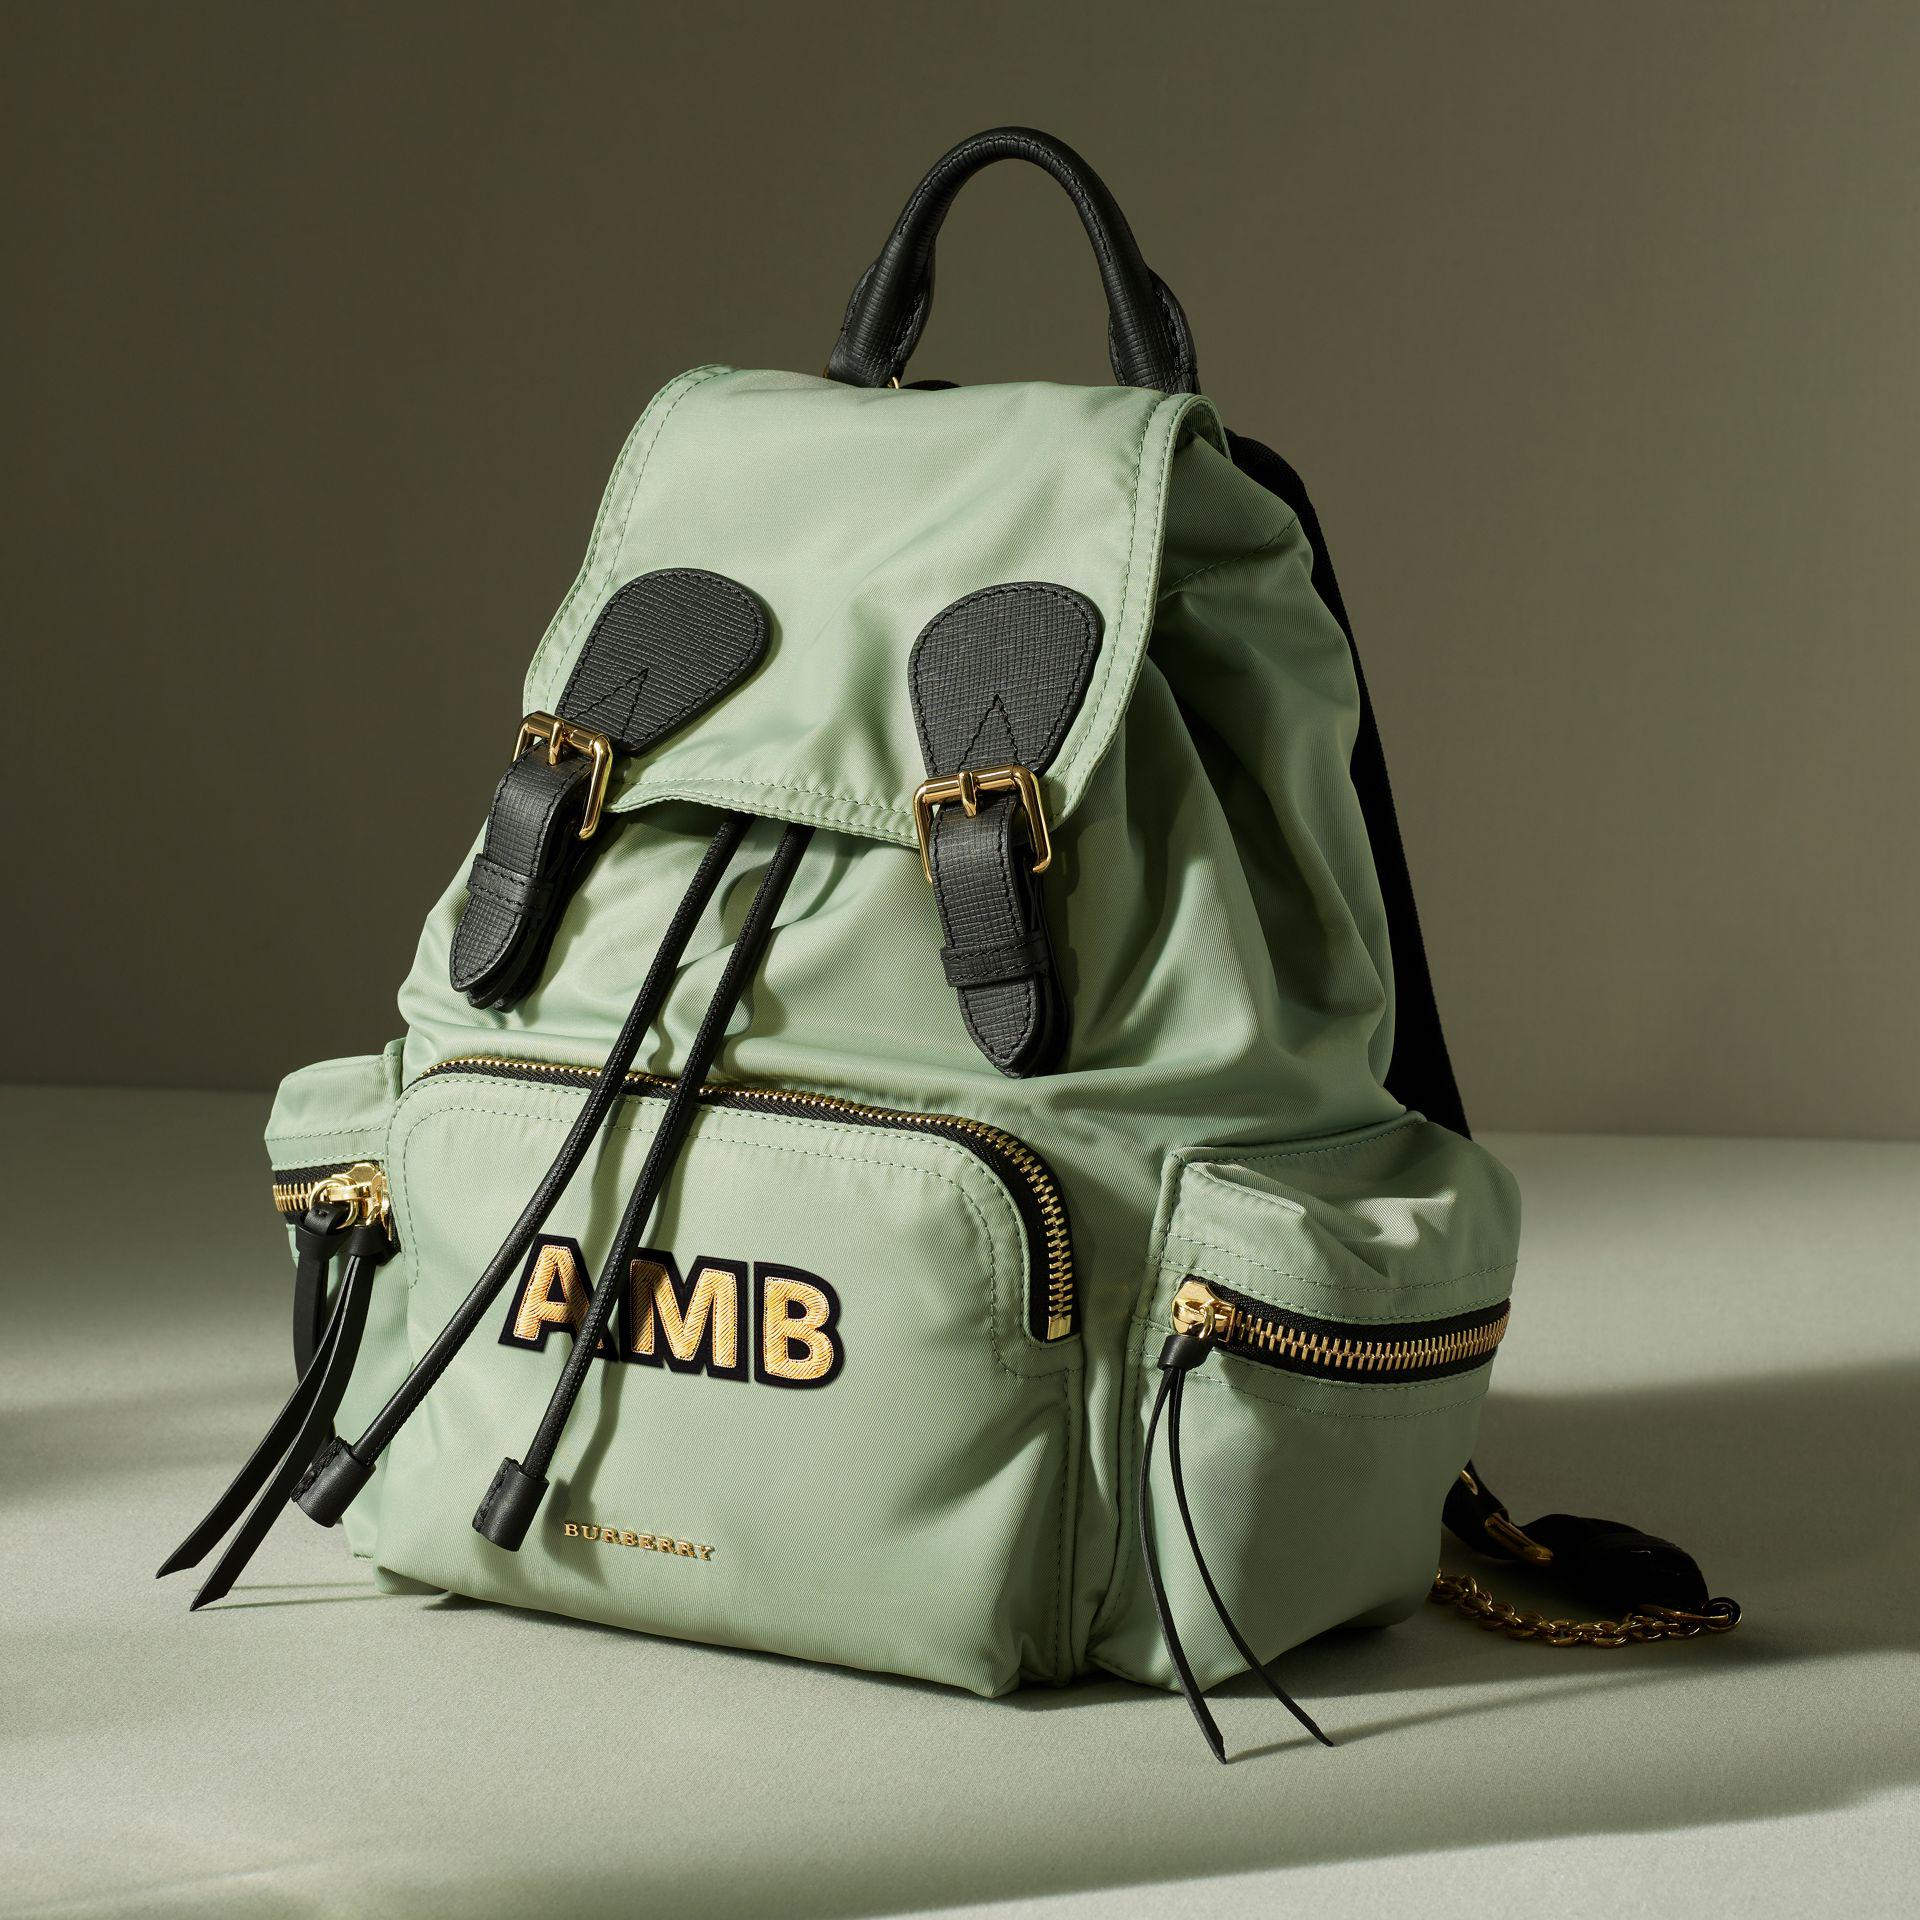 Lyst - Burberry The Medium Rucksack In Technical Nylon And Leather ... 5d04ec73b8ef1